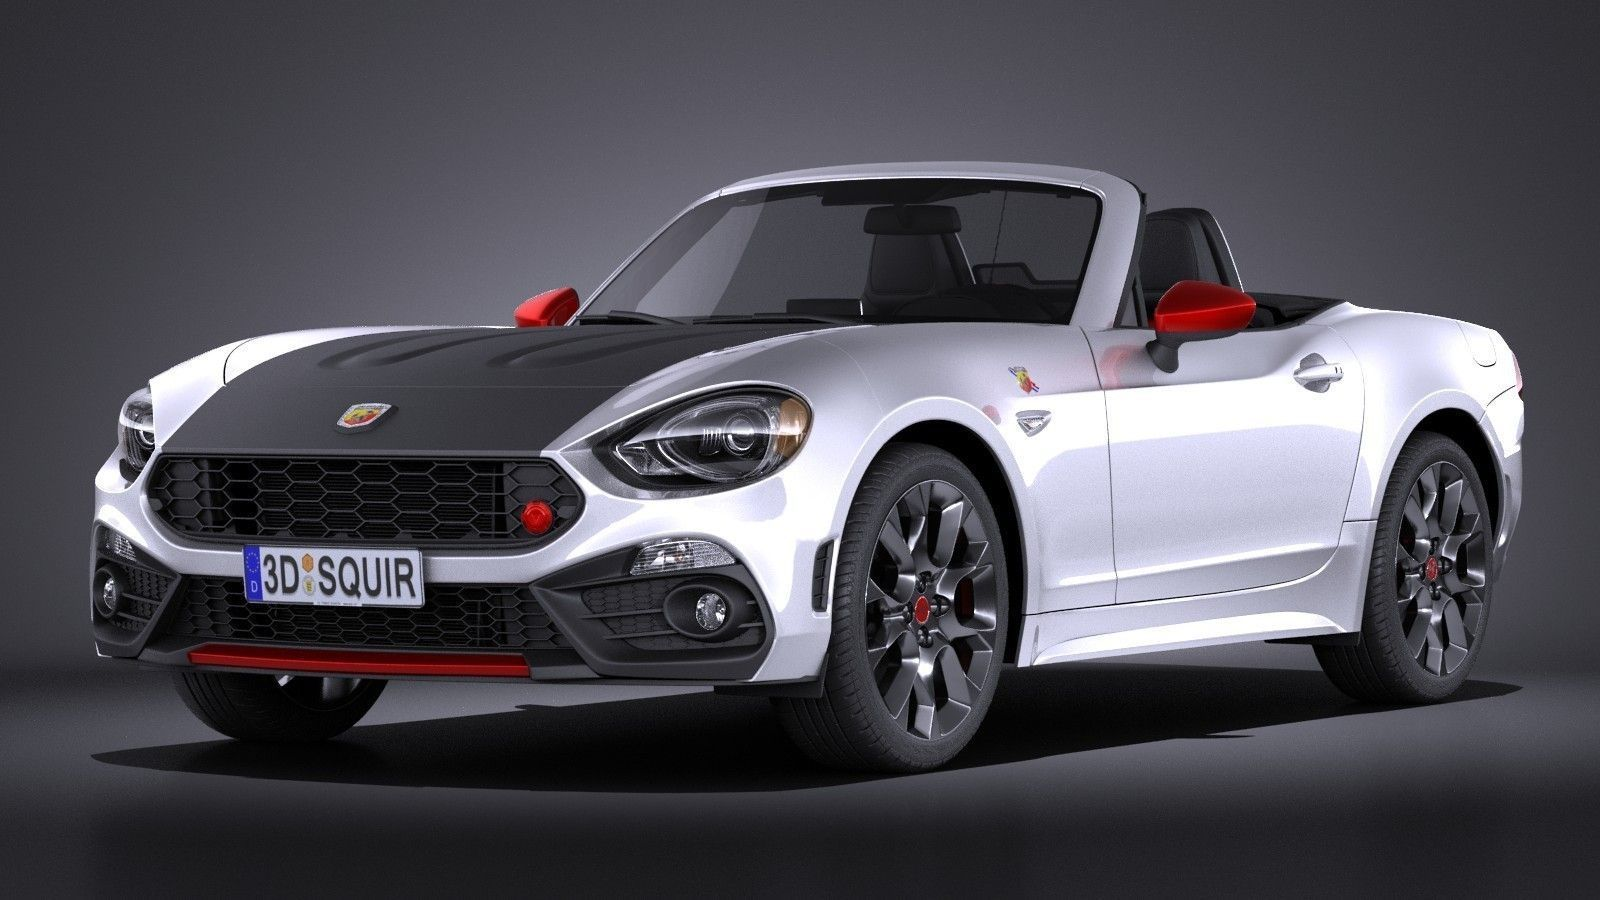 fiat 124 spider abarth 2017 3d model max obj 3ds fbx c4d lwo lw lws. Black Bedroom Furniture Sets. Home Design Ideas